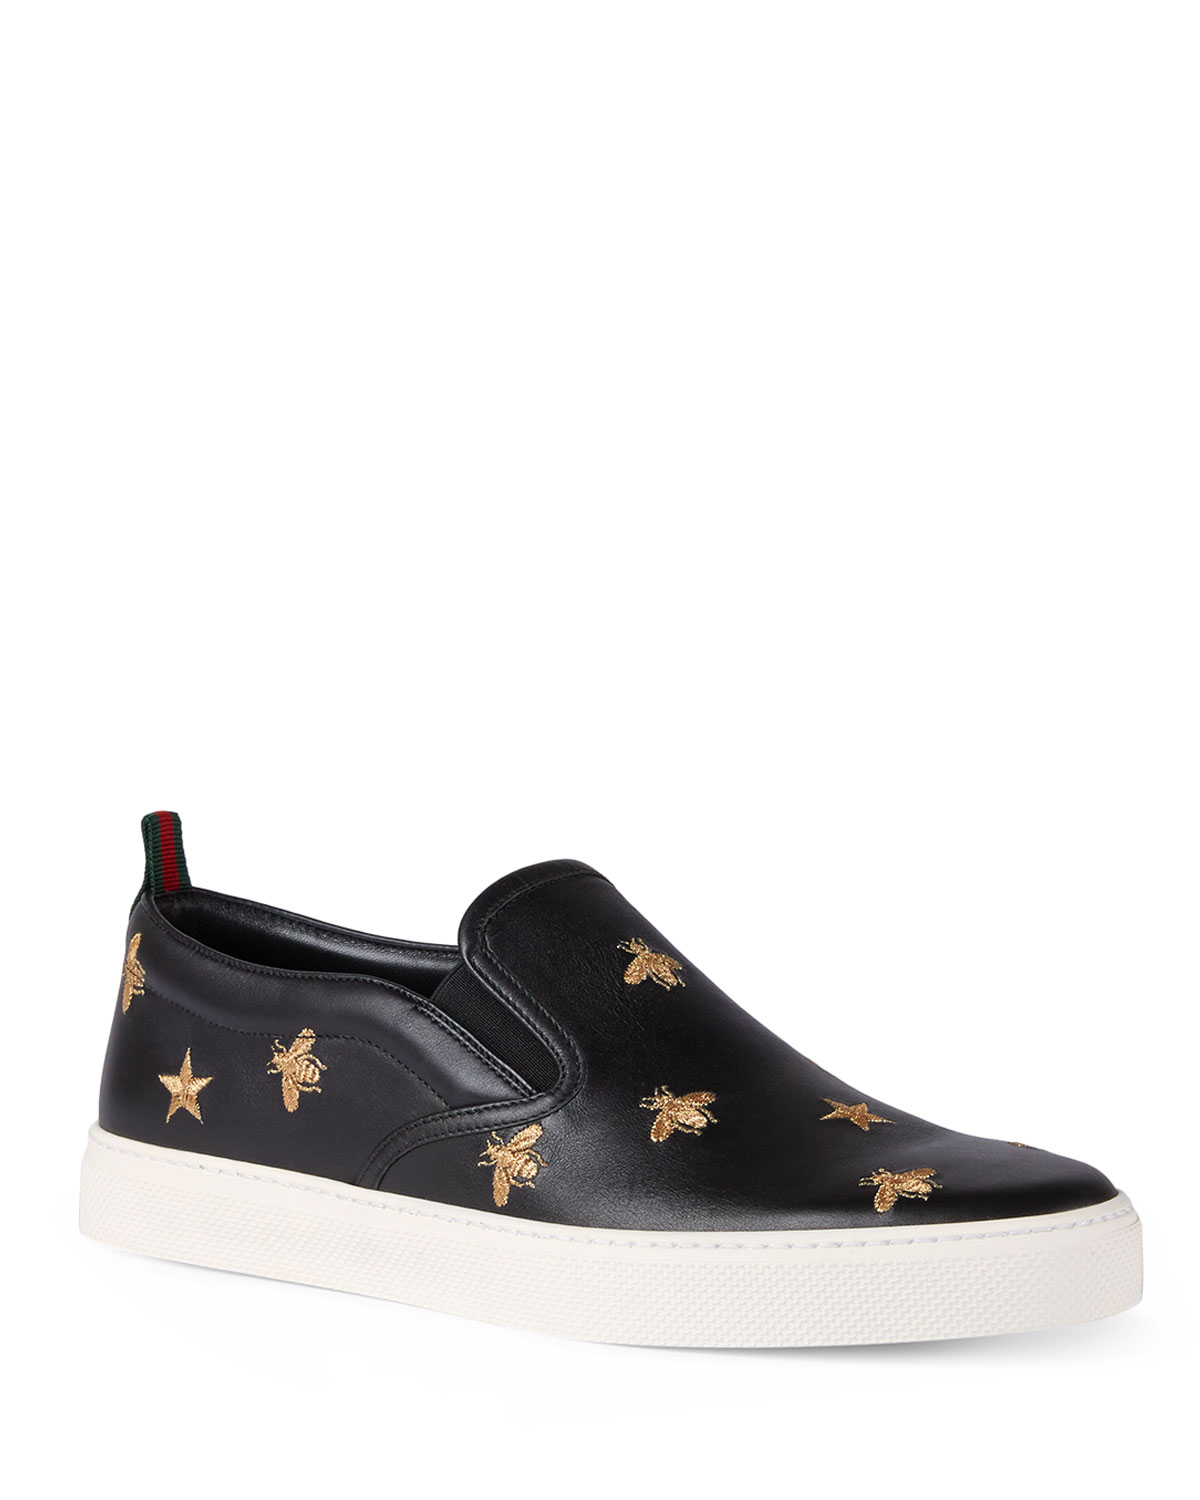 d4513901b2a Gucci Men s Dublin Bee   Star Embroidered Leather Slip-On Sneakers ...